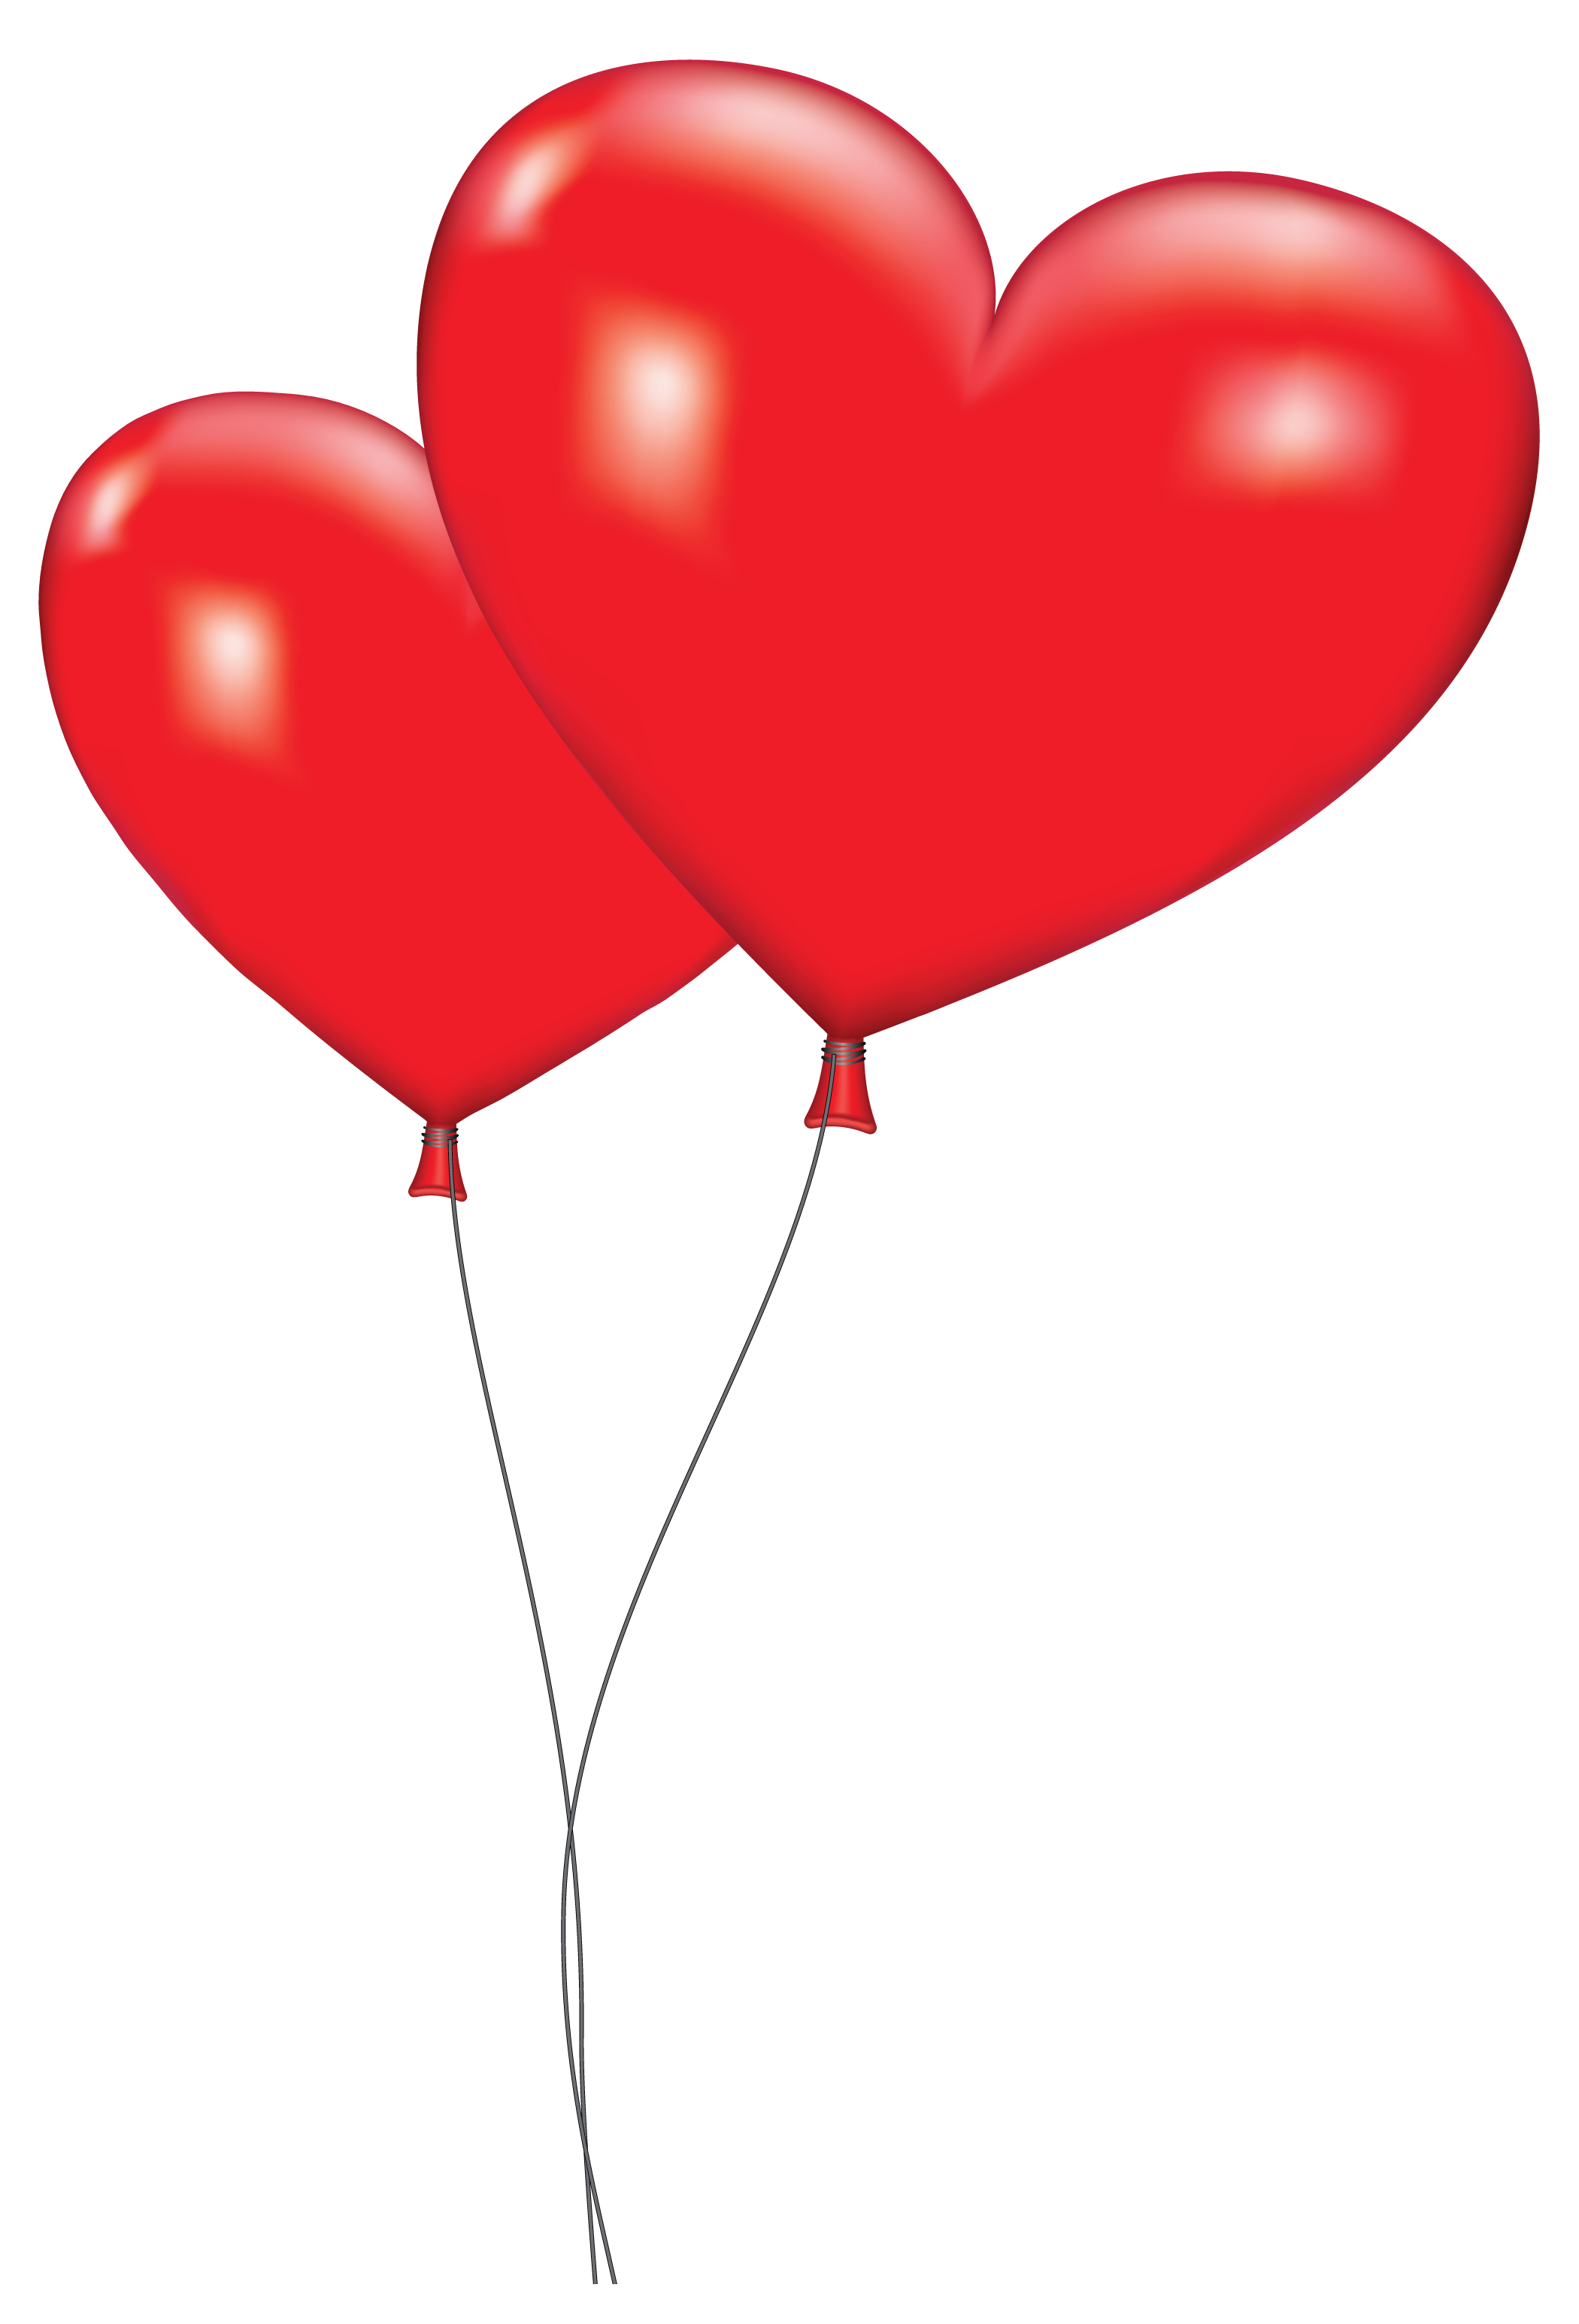 2100x3091 Large Red Heart Balloons Png Clipart Pictureu200b Gallery